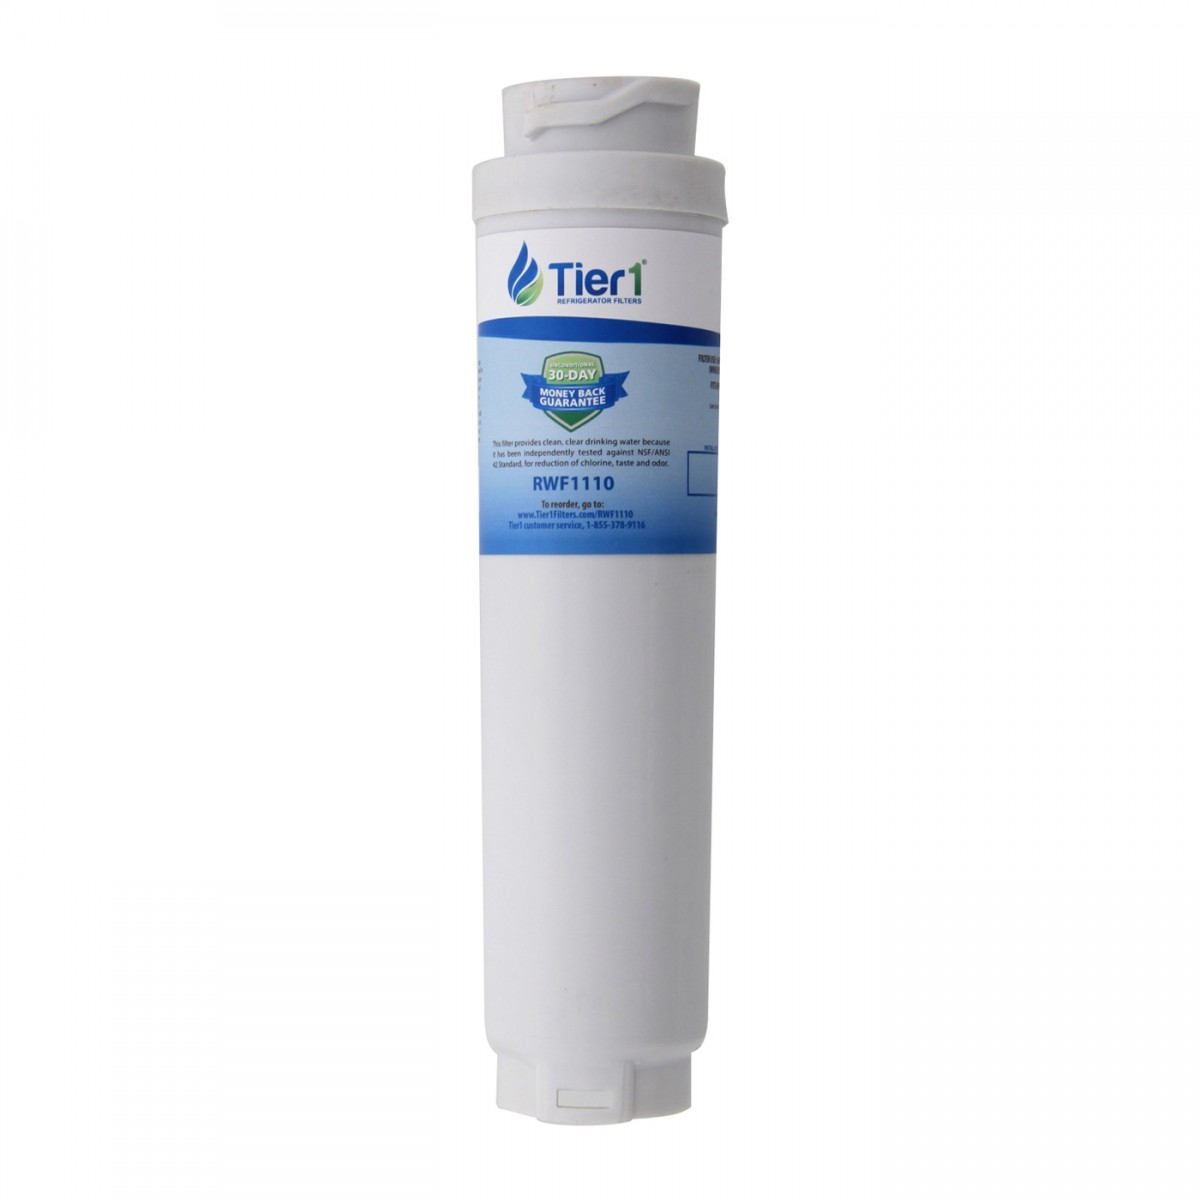 Tier1 Bosch 644845 Ultraclarity Replfltr10 Refrigerator Water Filter Replacement Comparable